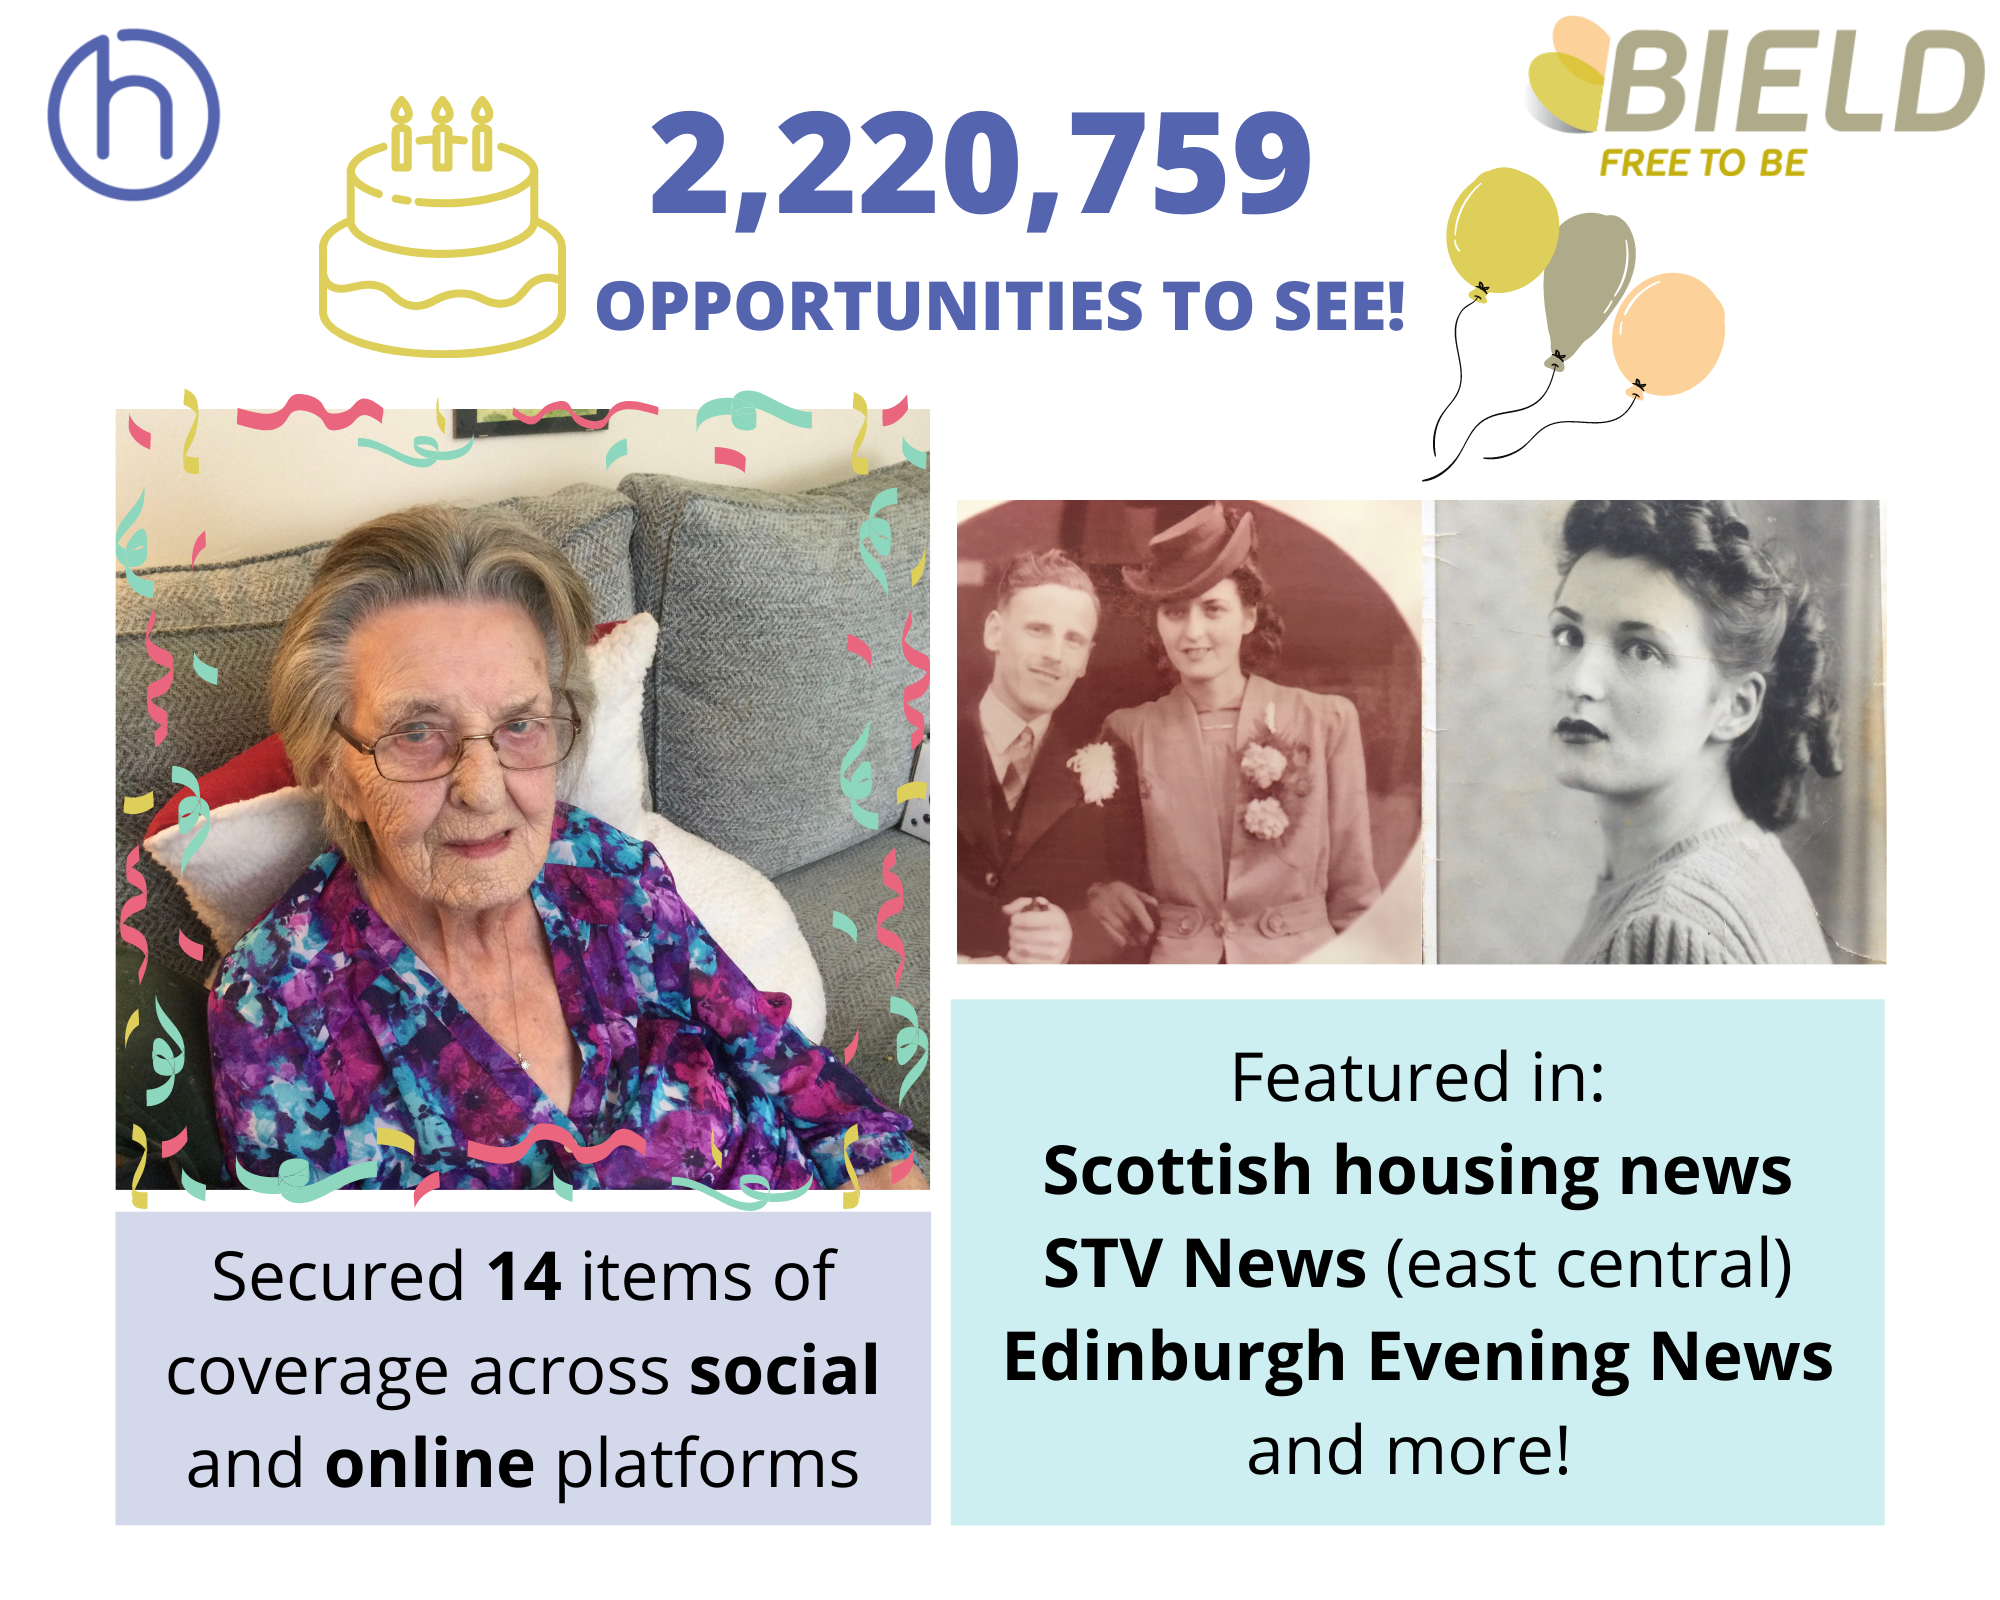 Social care PR photography, 100 year old birthday, Bield success graphic.